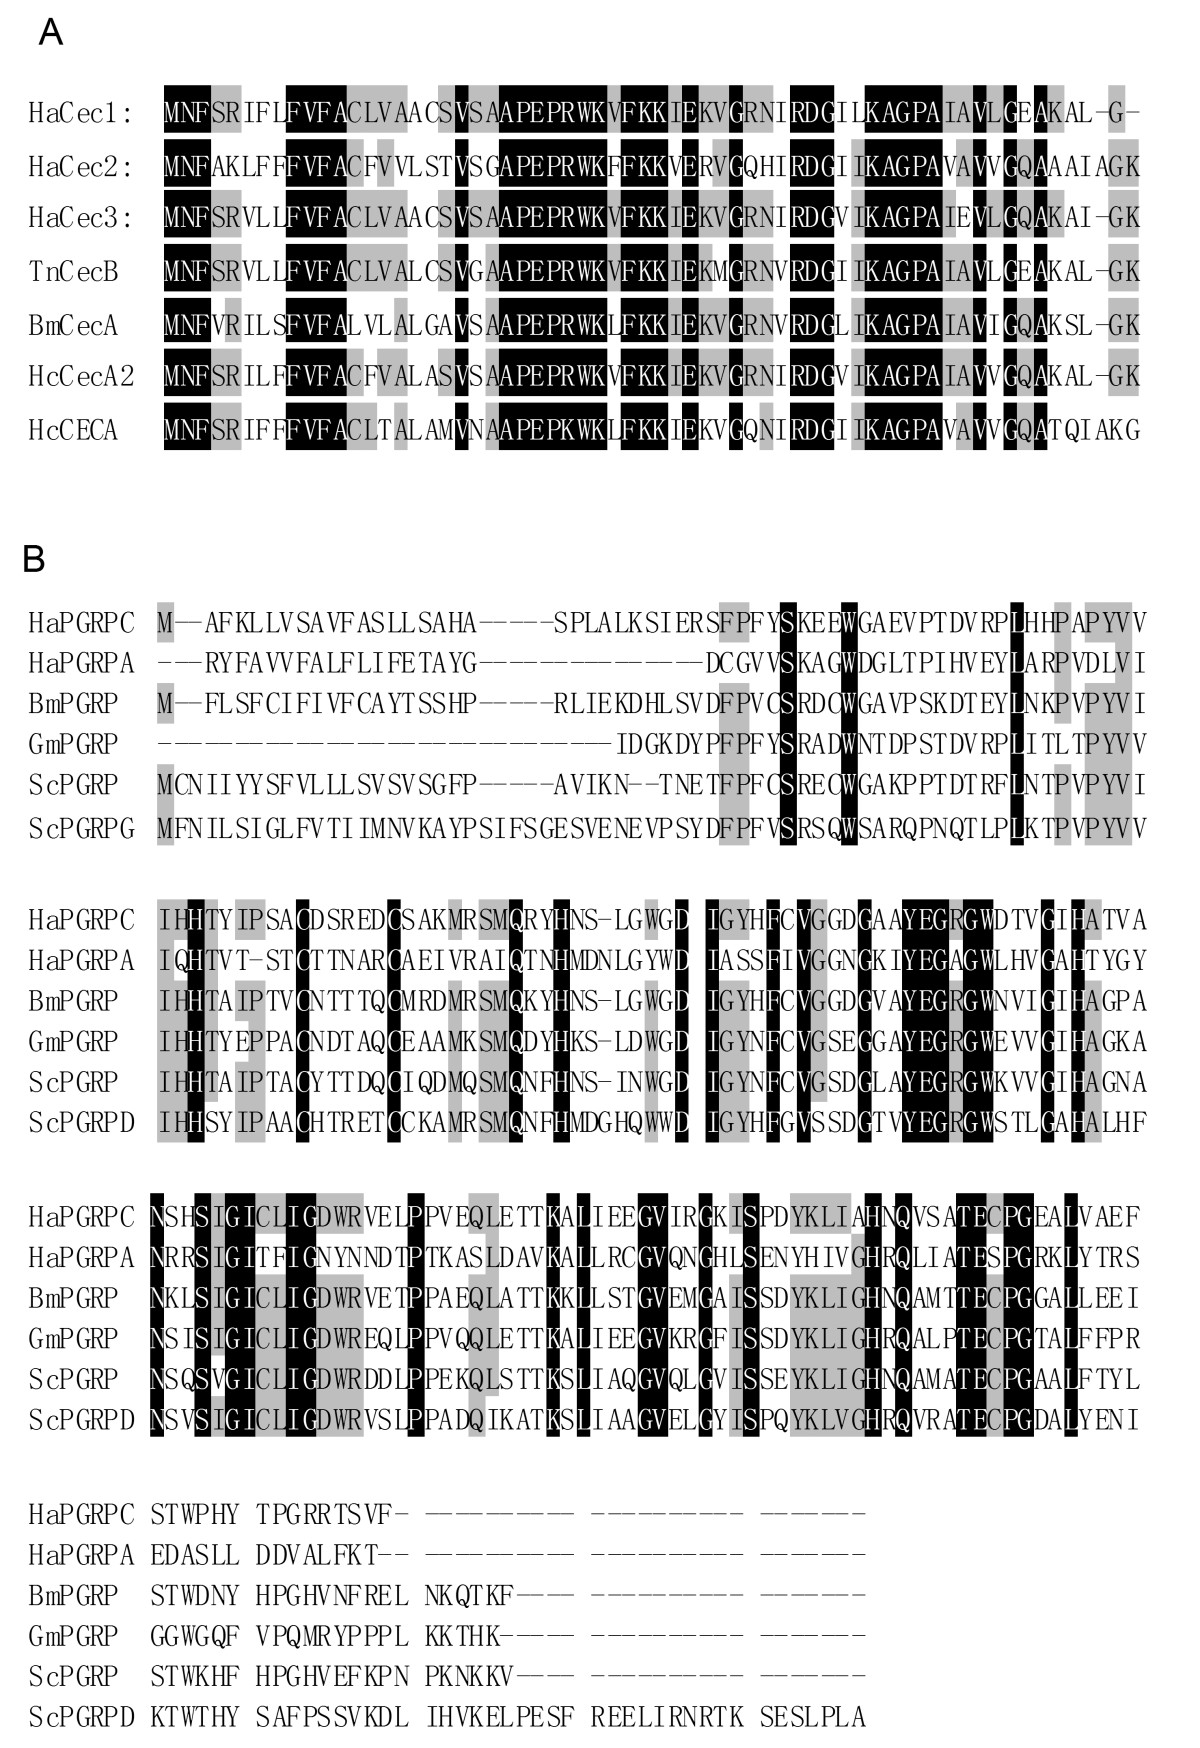 https://static-content.springer.com/image/art%3A10.1186%2F1471-2172-11-9/MediaObjects/12865_2009_Article_293_Fig3_HTML.jpg